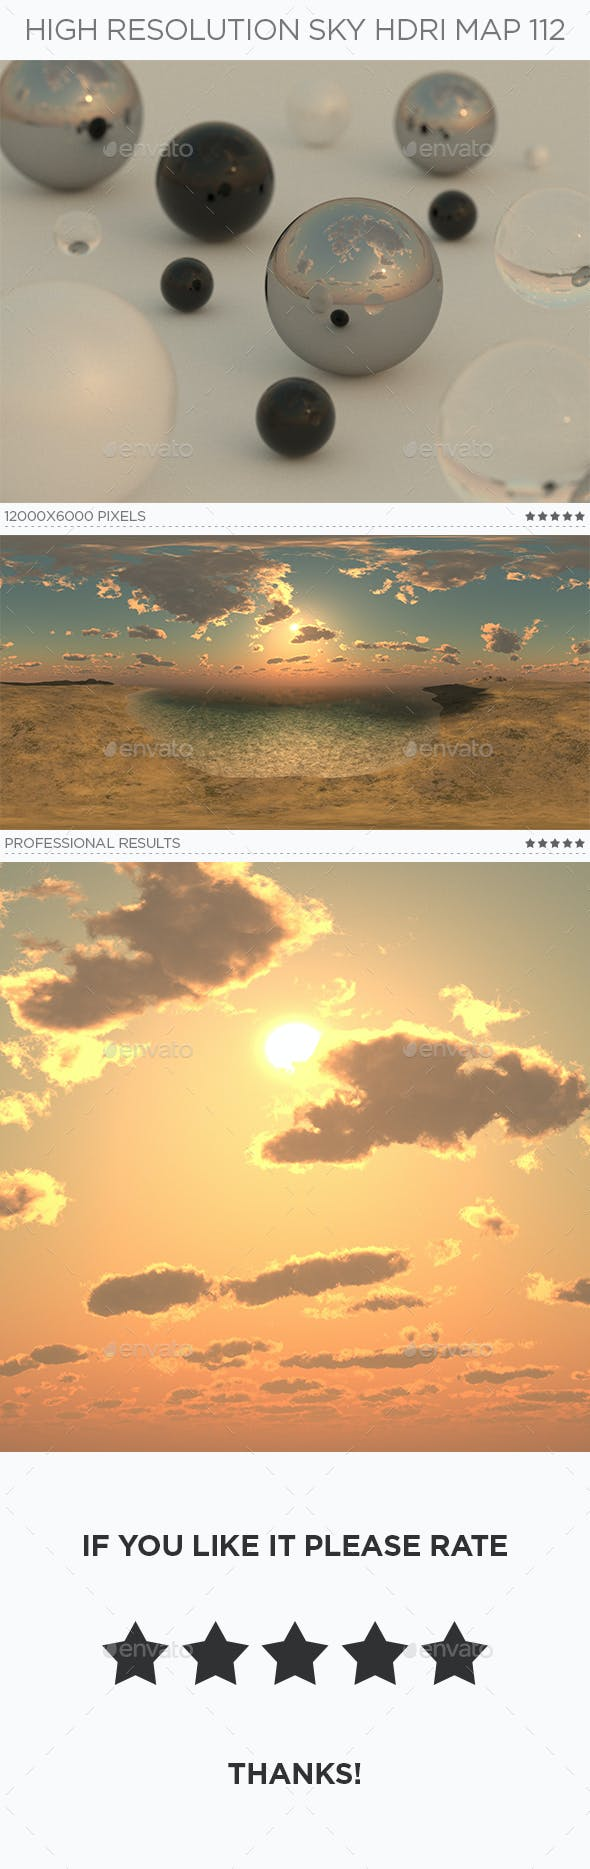 High Resolution Sky HDRi Map 112 - 3DOcean Item for Sale